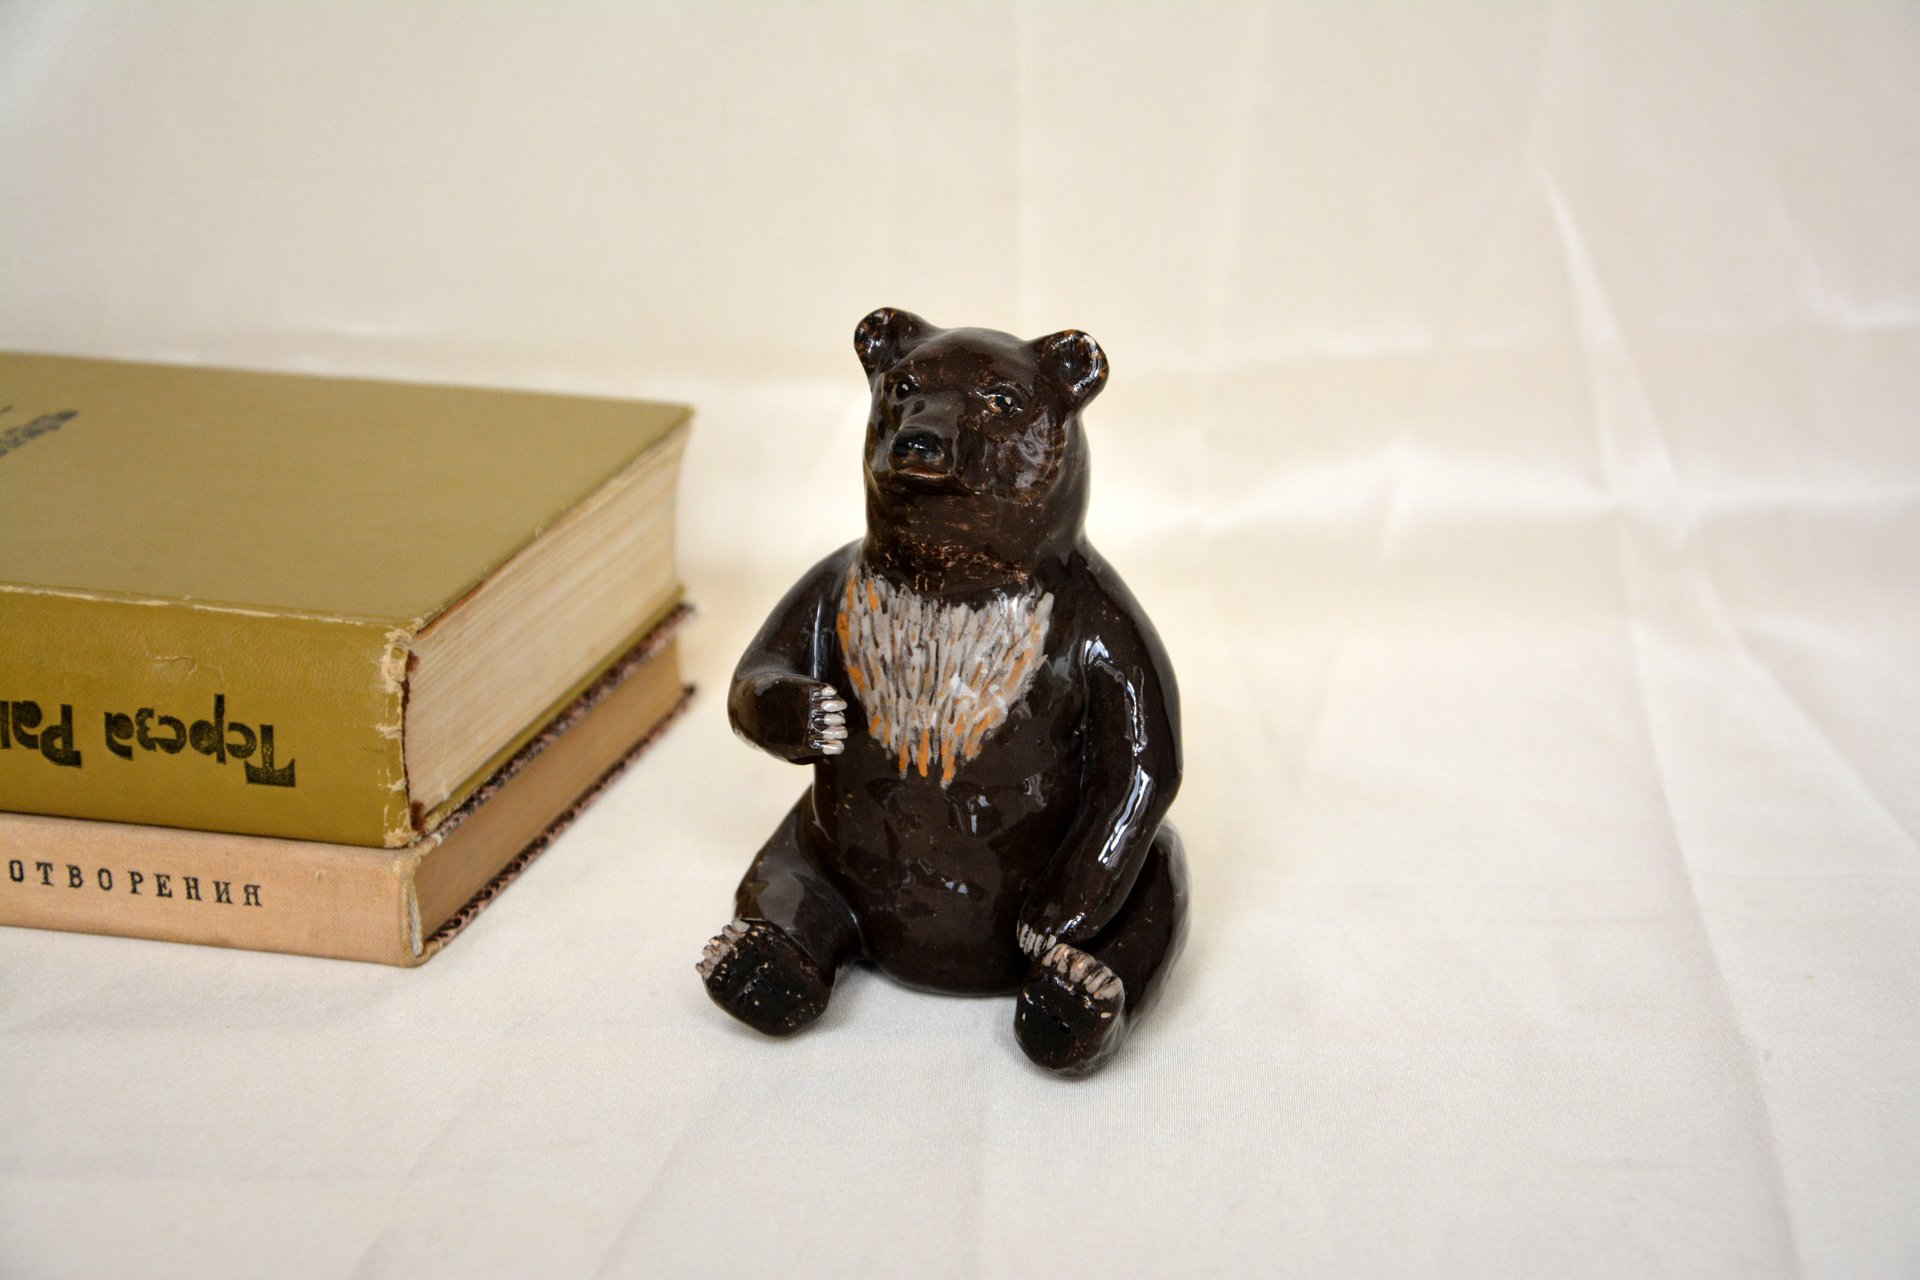 Bear-toed - Animals and birds, height - 11 cm, photo 2 of 2.